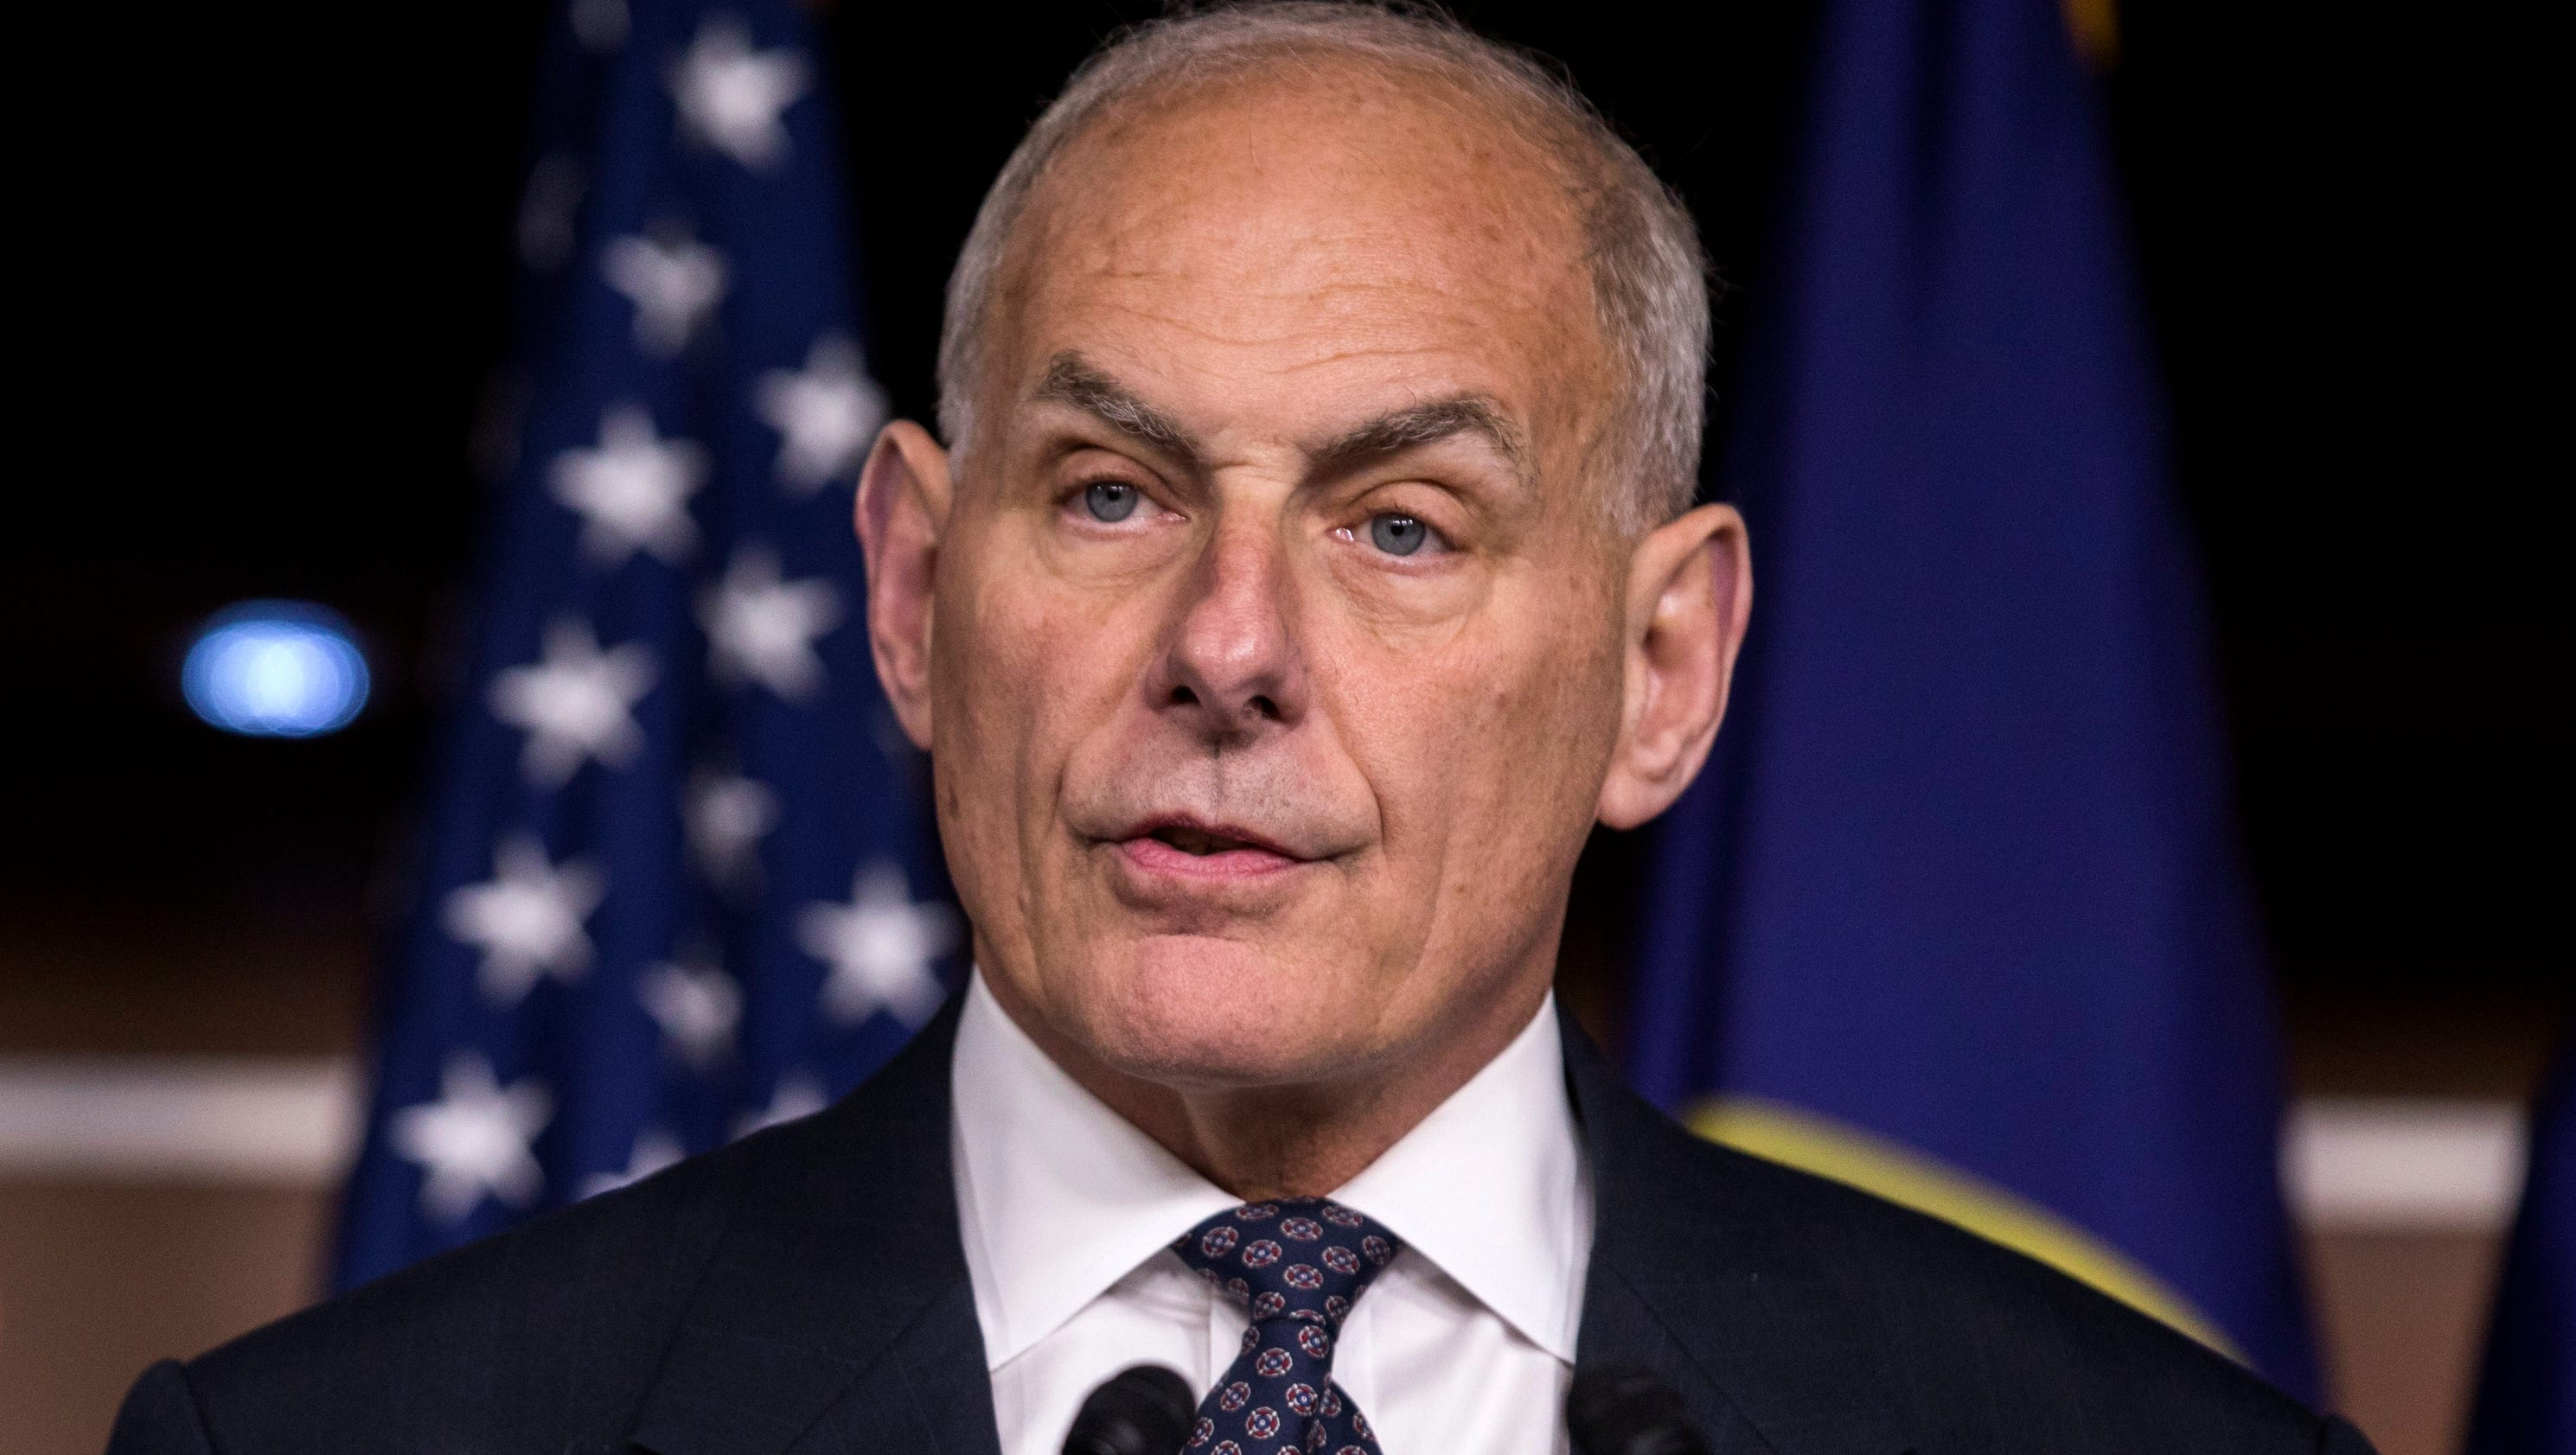 5 things to know about new White House chief of staff John Kelly